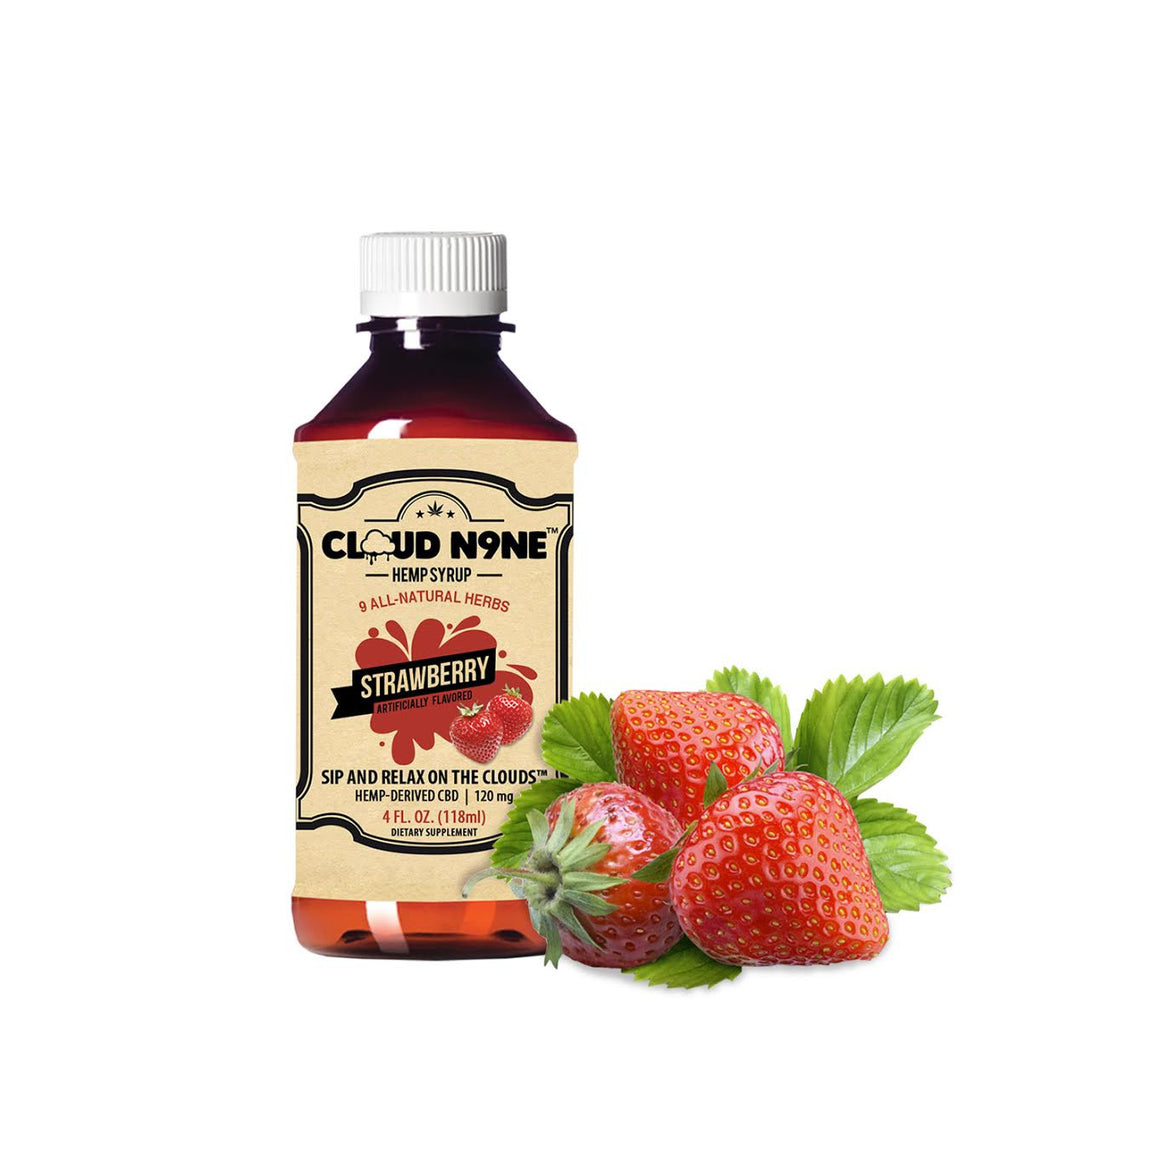 CLOUD N9NE SYRUP - Strawberry - 120mg CBD per Bottle -  Helps relieve mild pain, stress, anxiety, insomnia and much more)